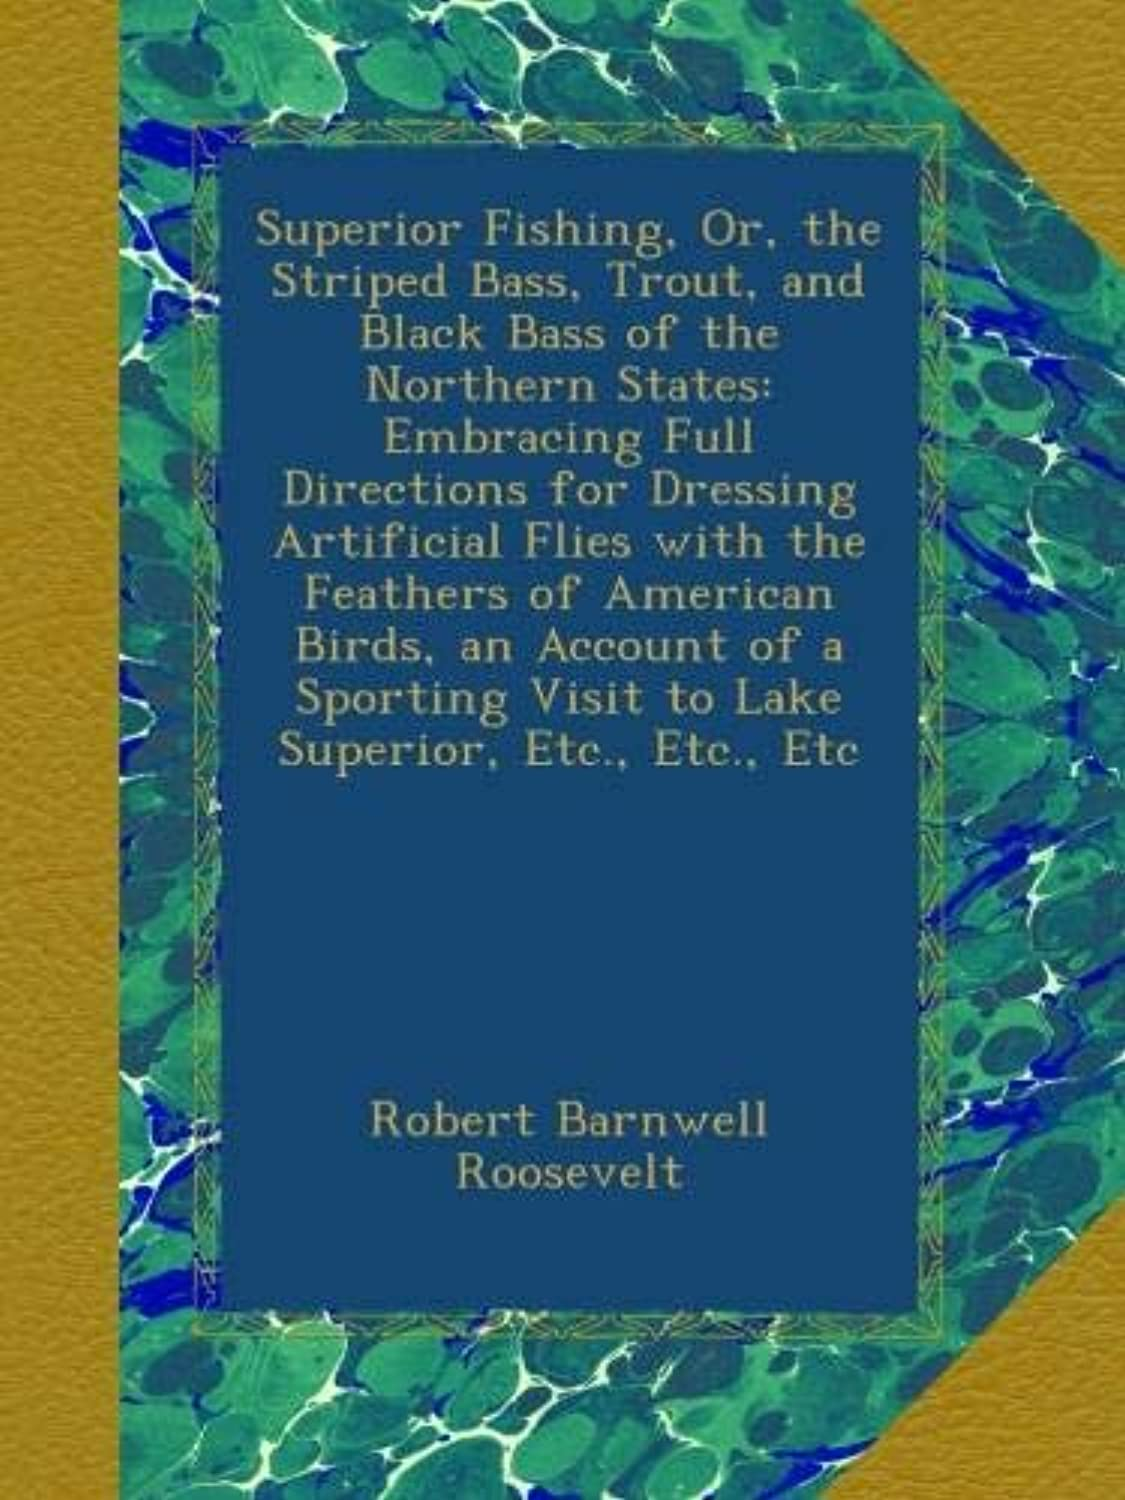 Superior Fishing, Or, the Striped Bass, Trout, and Black Bass of the Northern States: Embracing Full Directions for Dressing Artificial Flies with the Feathers of American Birds, an Account of a Sporting Visit to Lake Superior, Etc., Etc., Etc